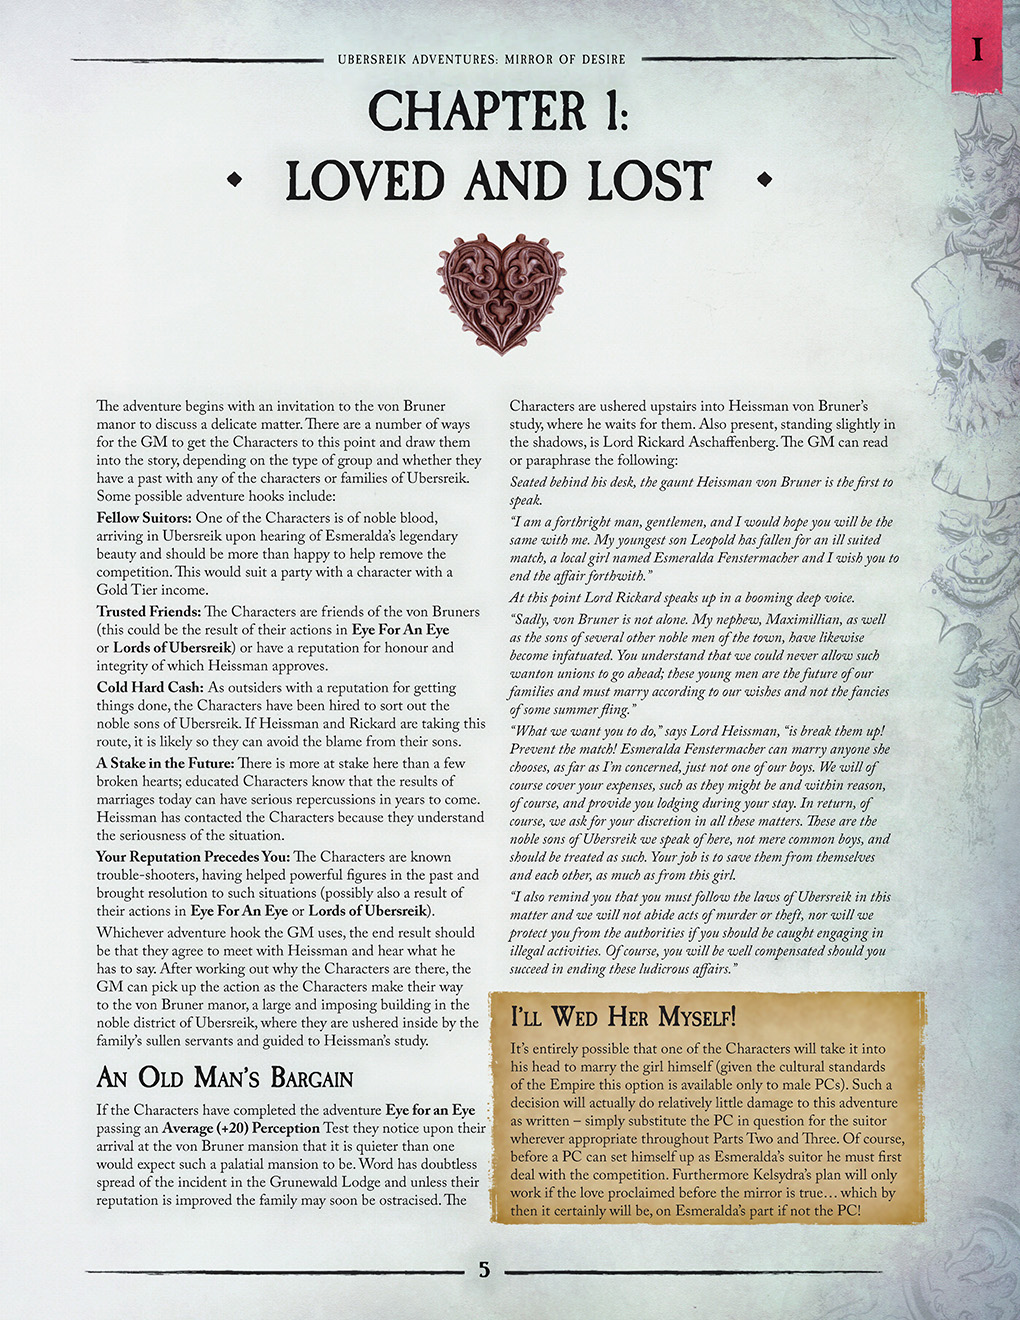 Warhammer Fantasy Roleplay 4th Edition Mirror Of Desire By Games From The Perilous Realm